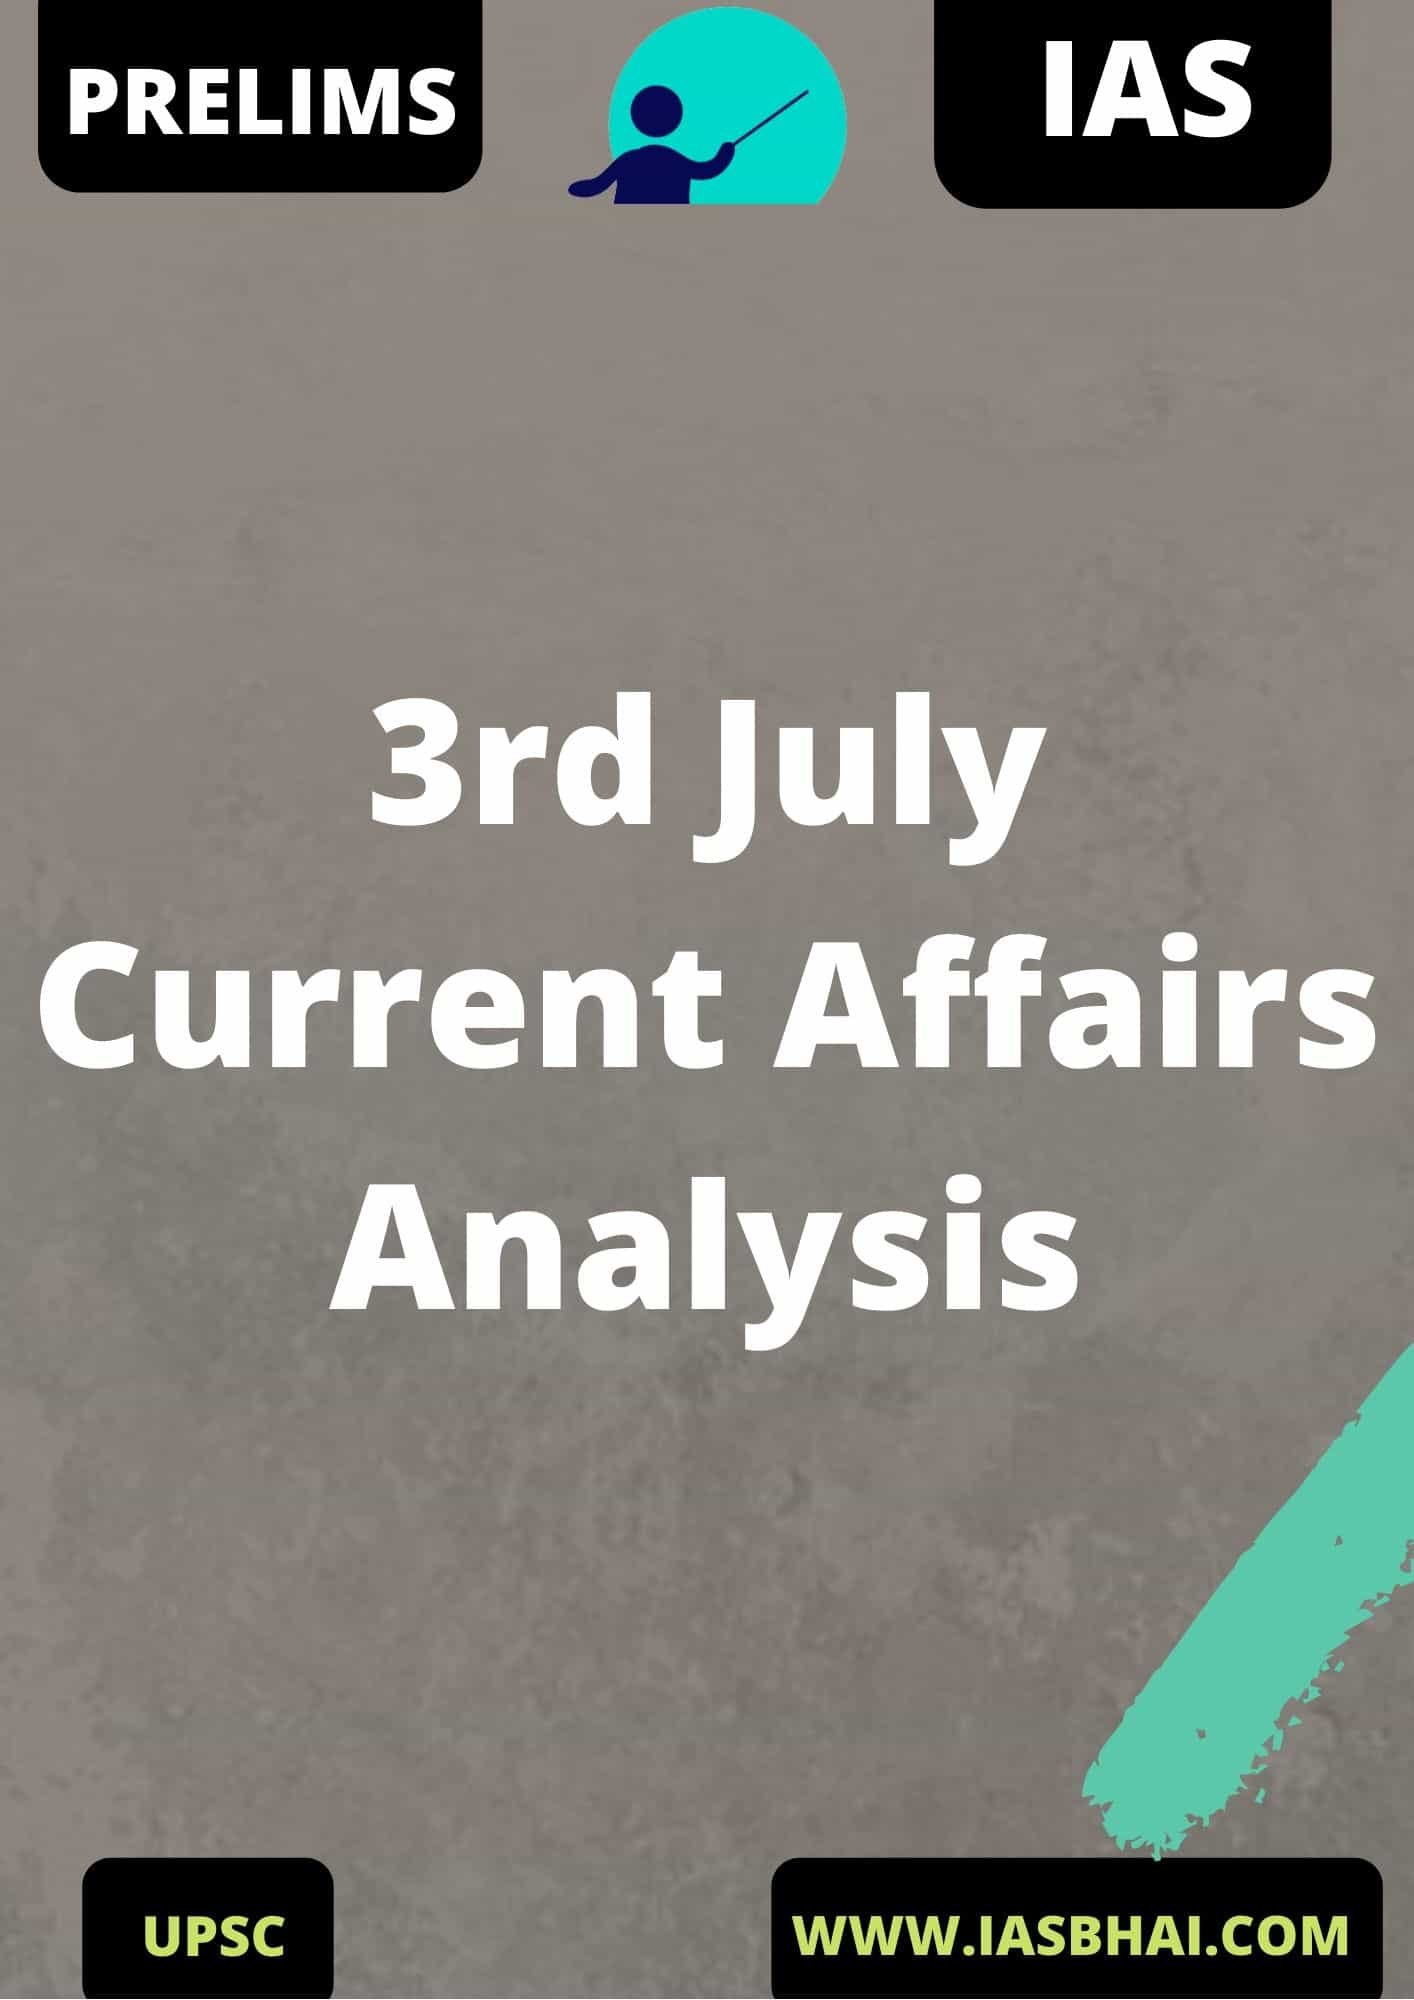 3rd July Current Affairs News Analysis Prelims & Mains 2020